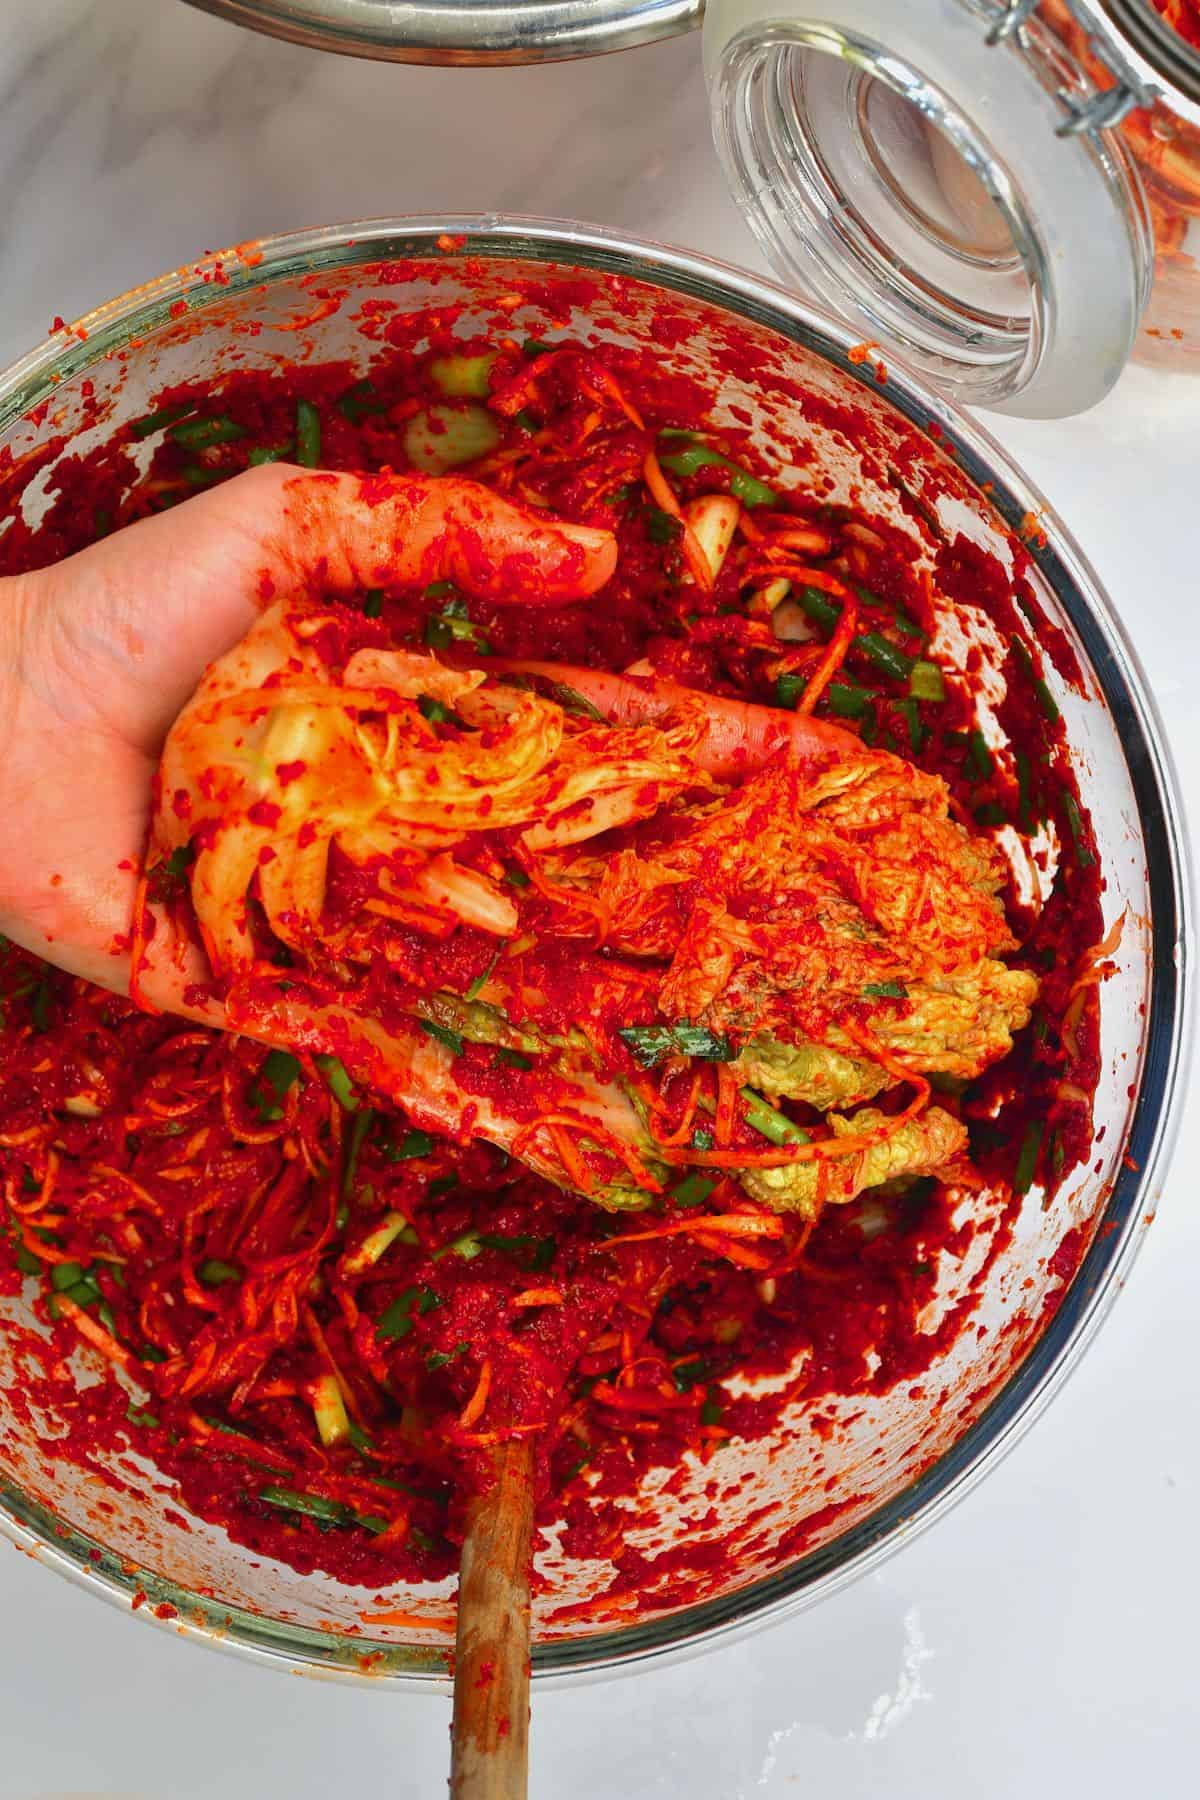 Napa cabbage filled with kimchi paste